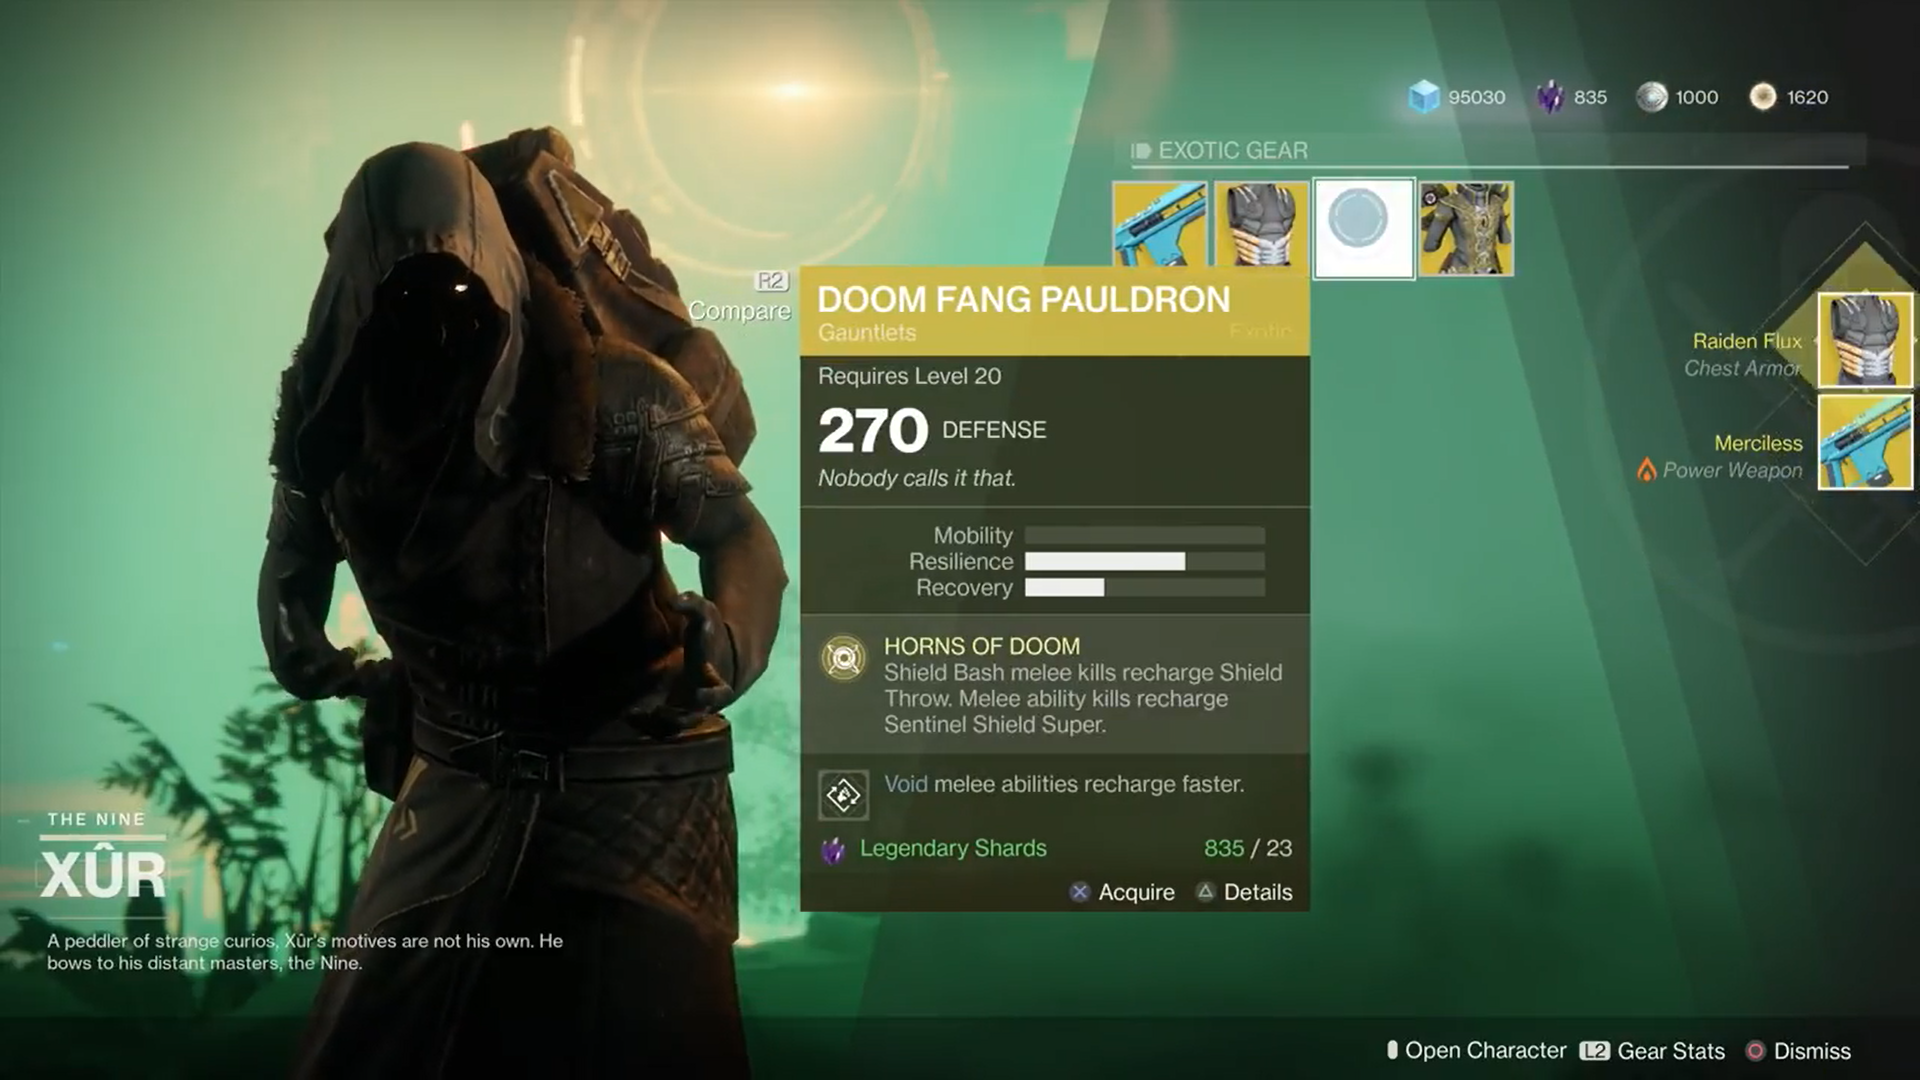 Xur Is Kind Of A Big Deal In Destiny 2 This Mysterious Vendor Sells Exotic Weapons And Armor For Legendary Shards The New Currency Your Guardians Earn